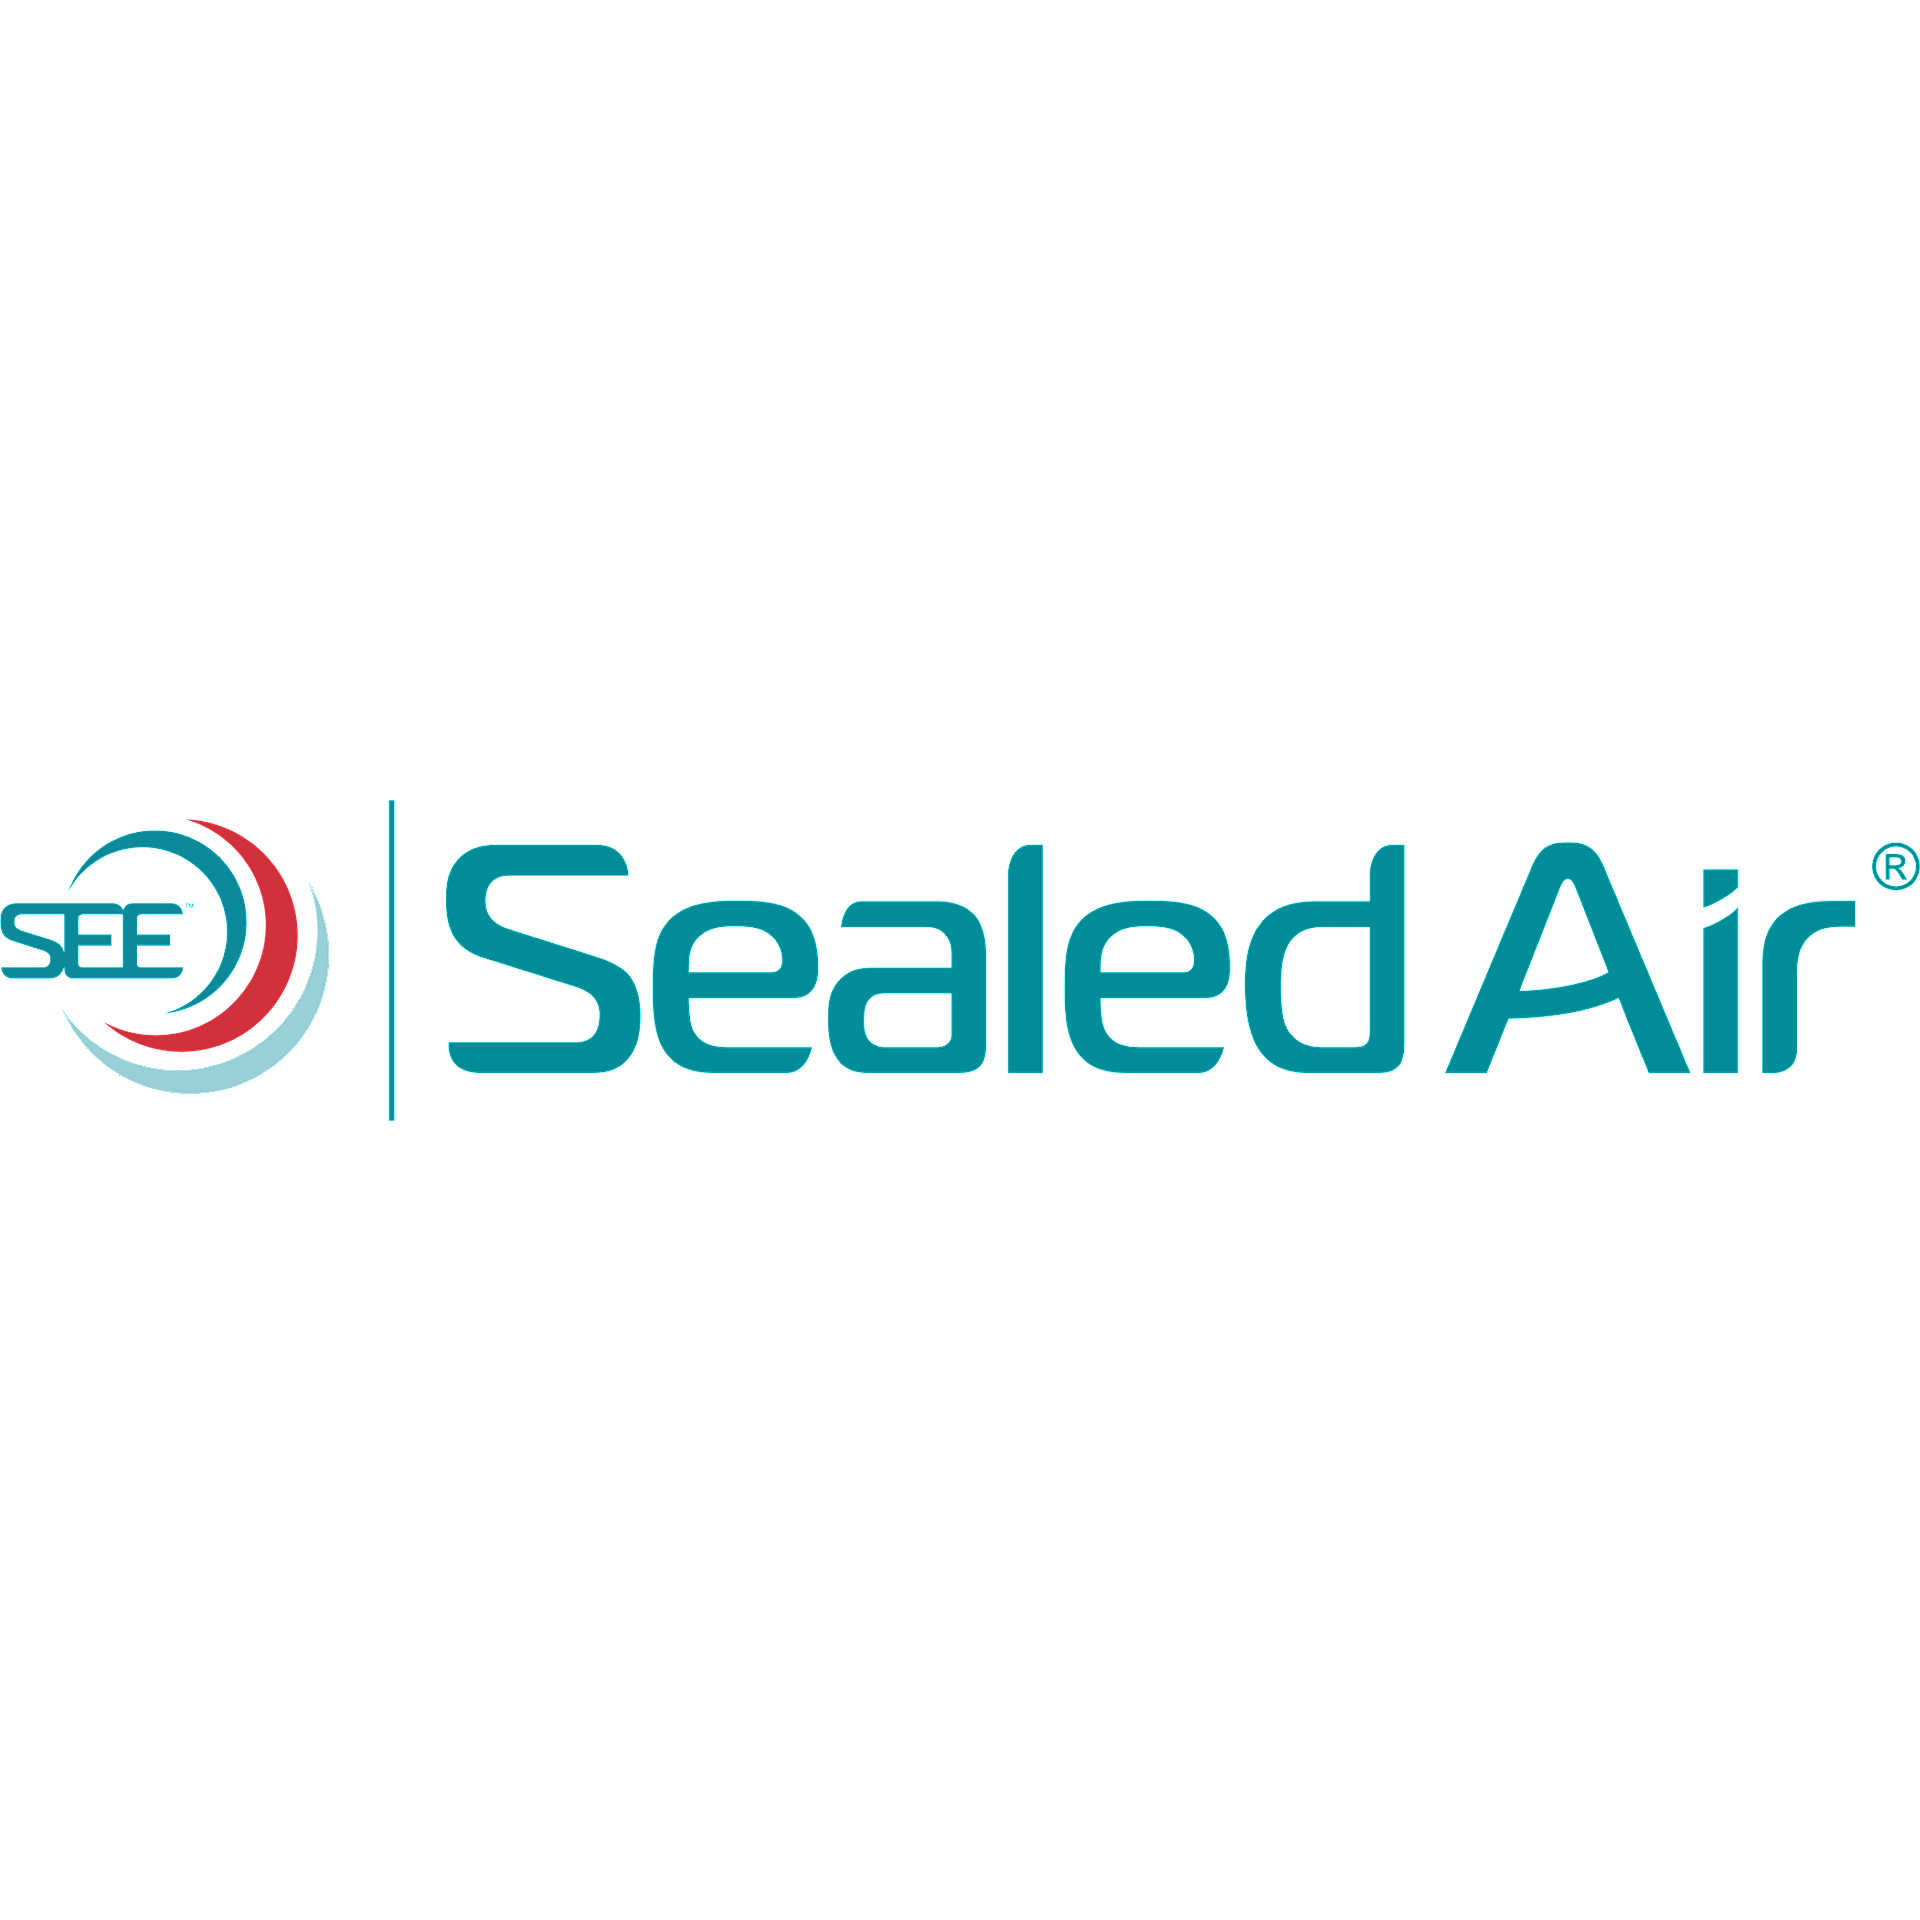 Sealed Air - Protective and Food Packaging, Automation & Healthcare